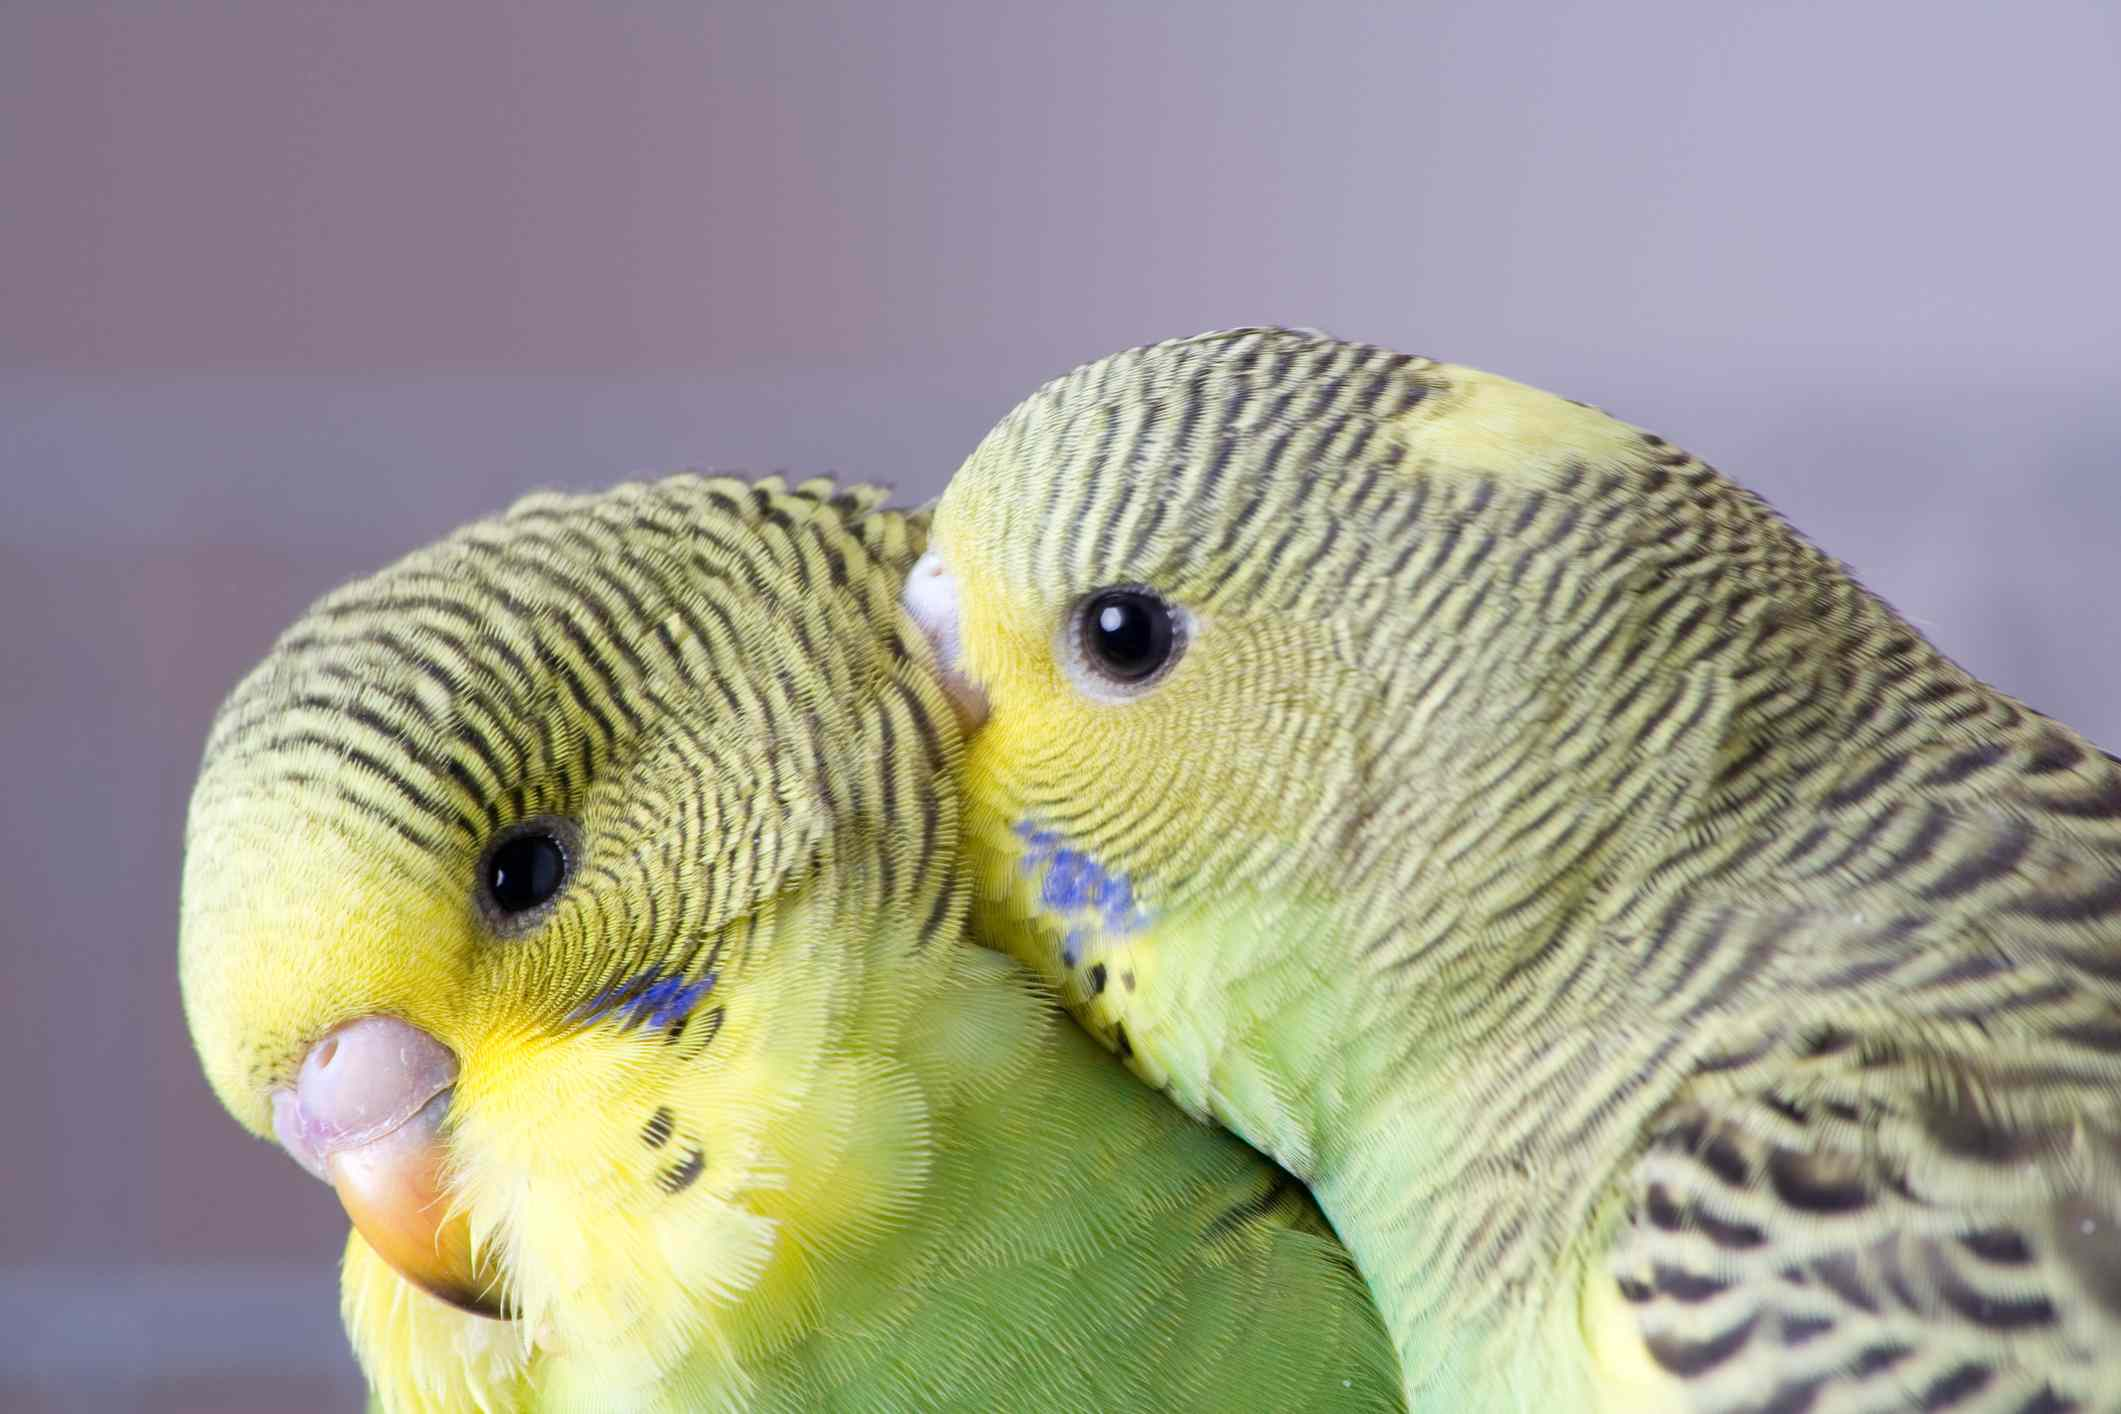 two parakeets sitting together